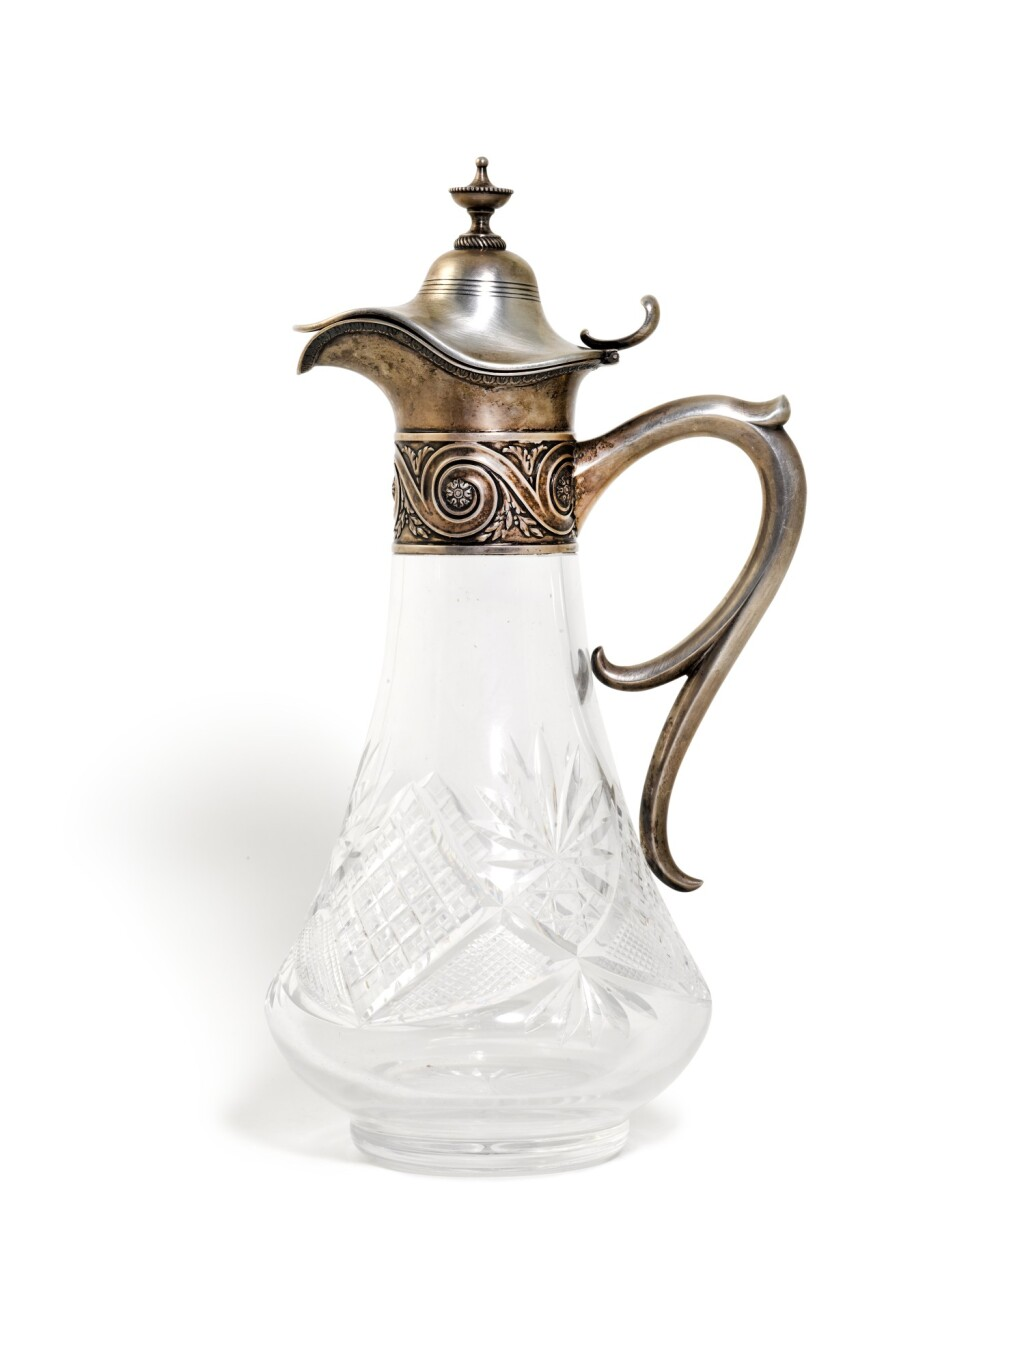 A SILVER-MOUNTED CUT-GLASS DECANTER, GRACHEV BROTHERS, ST PETERSBURG, 1908-1917